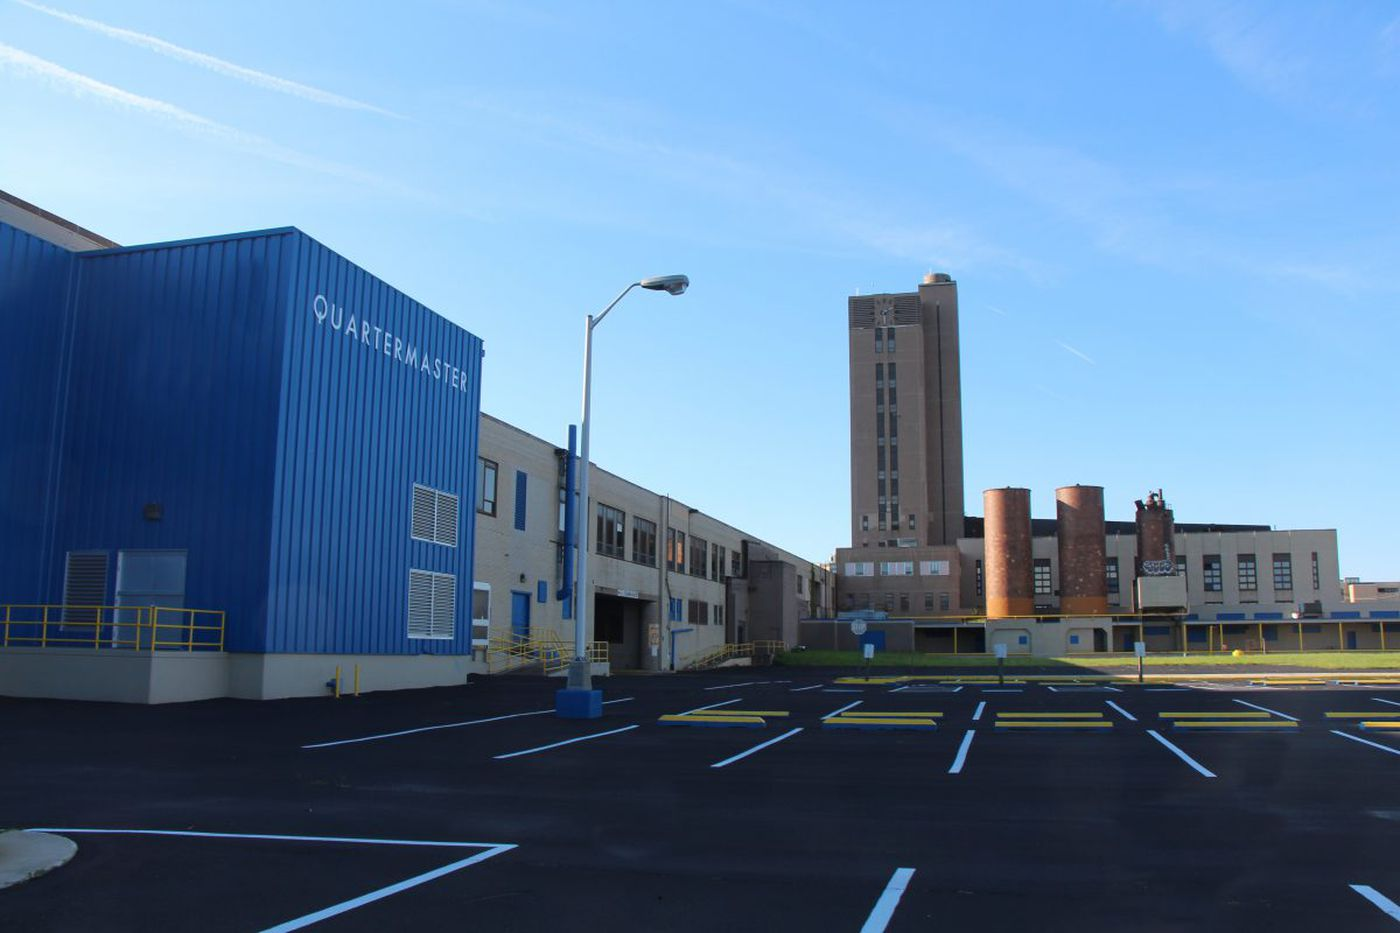 State Police move offices to Quartermaster redeveloped military complex in South Philly